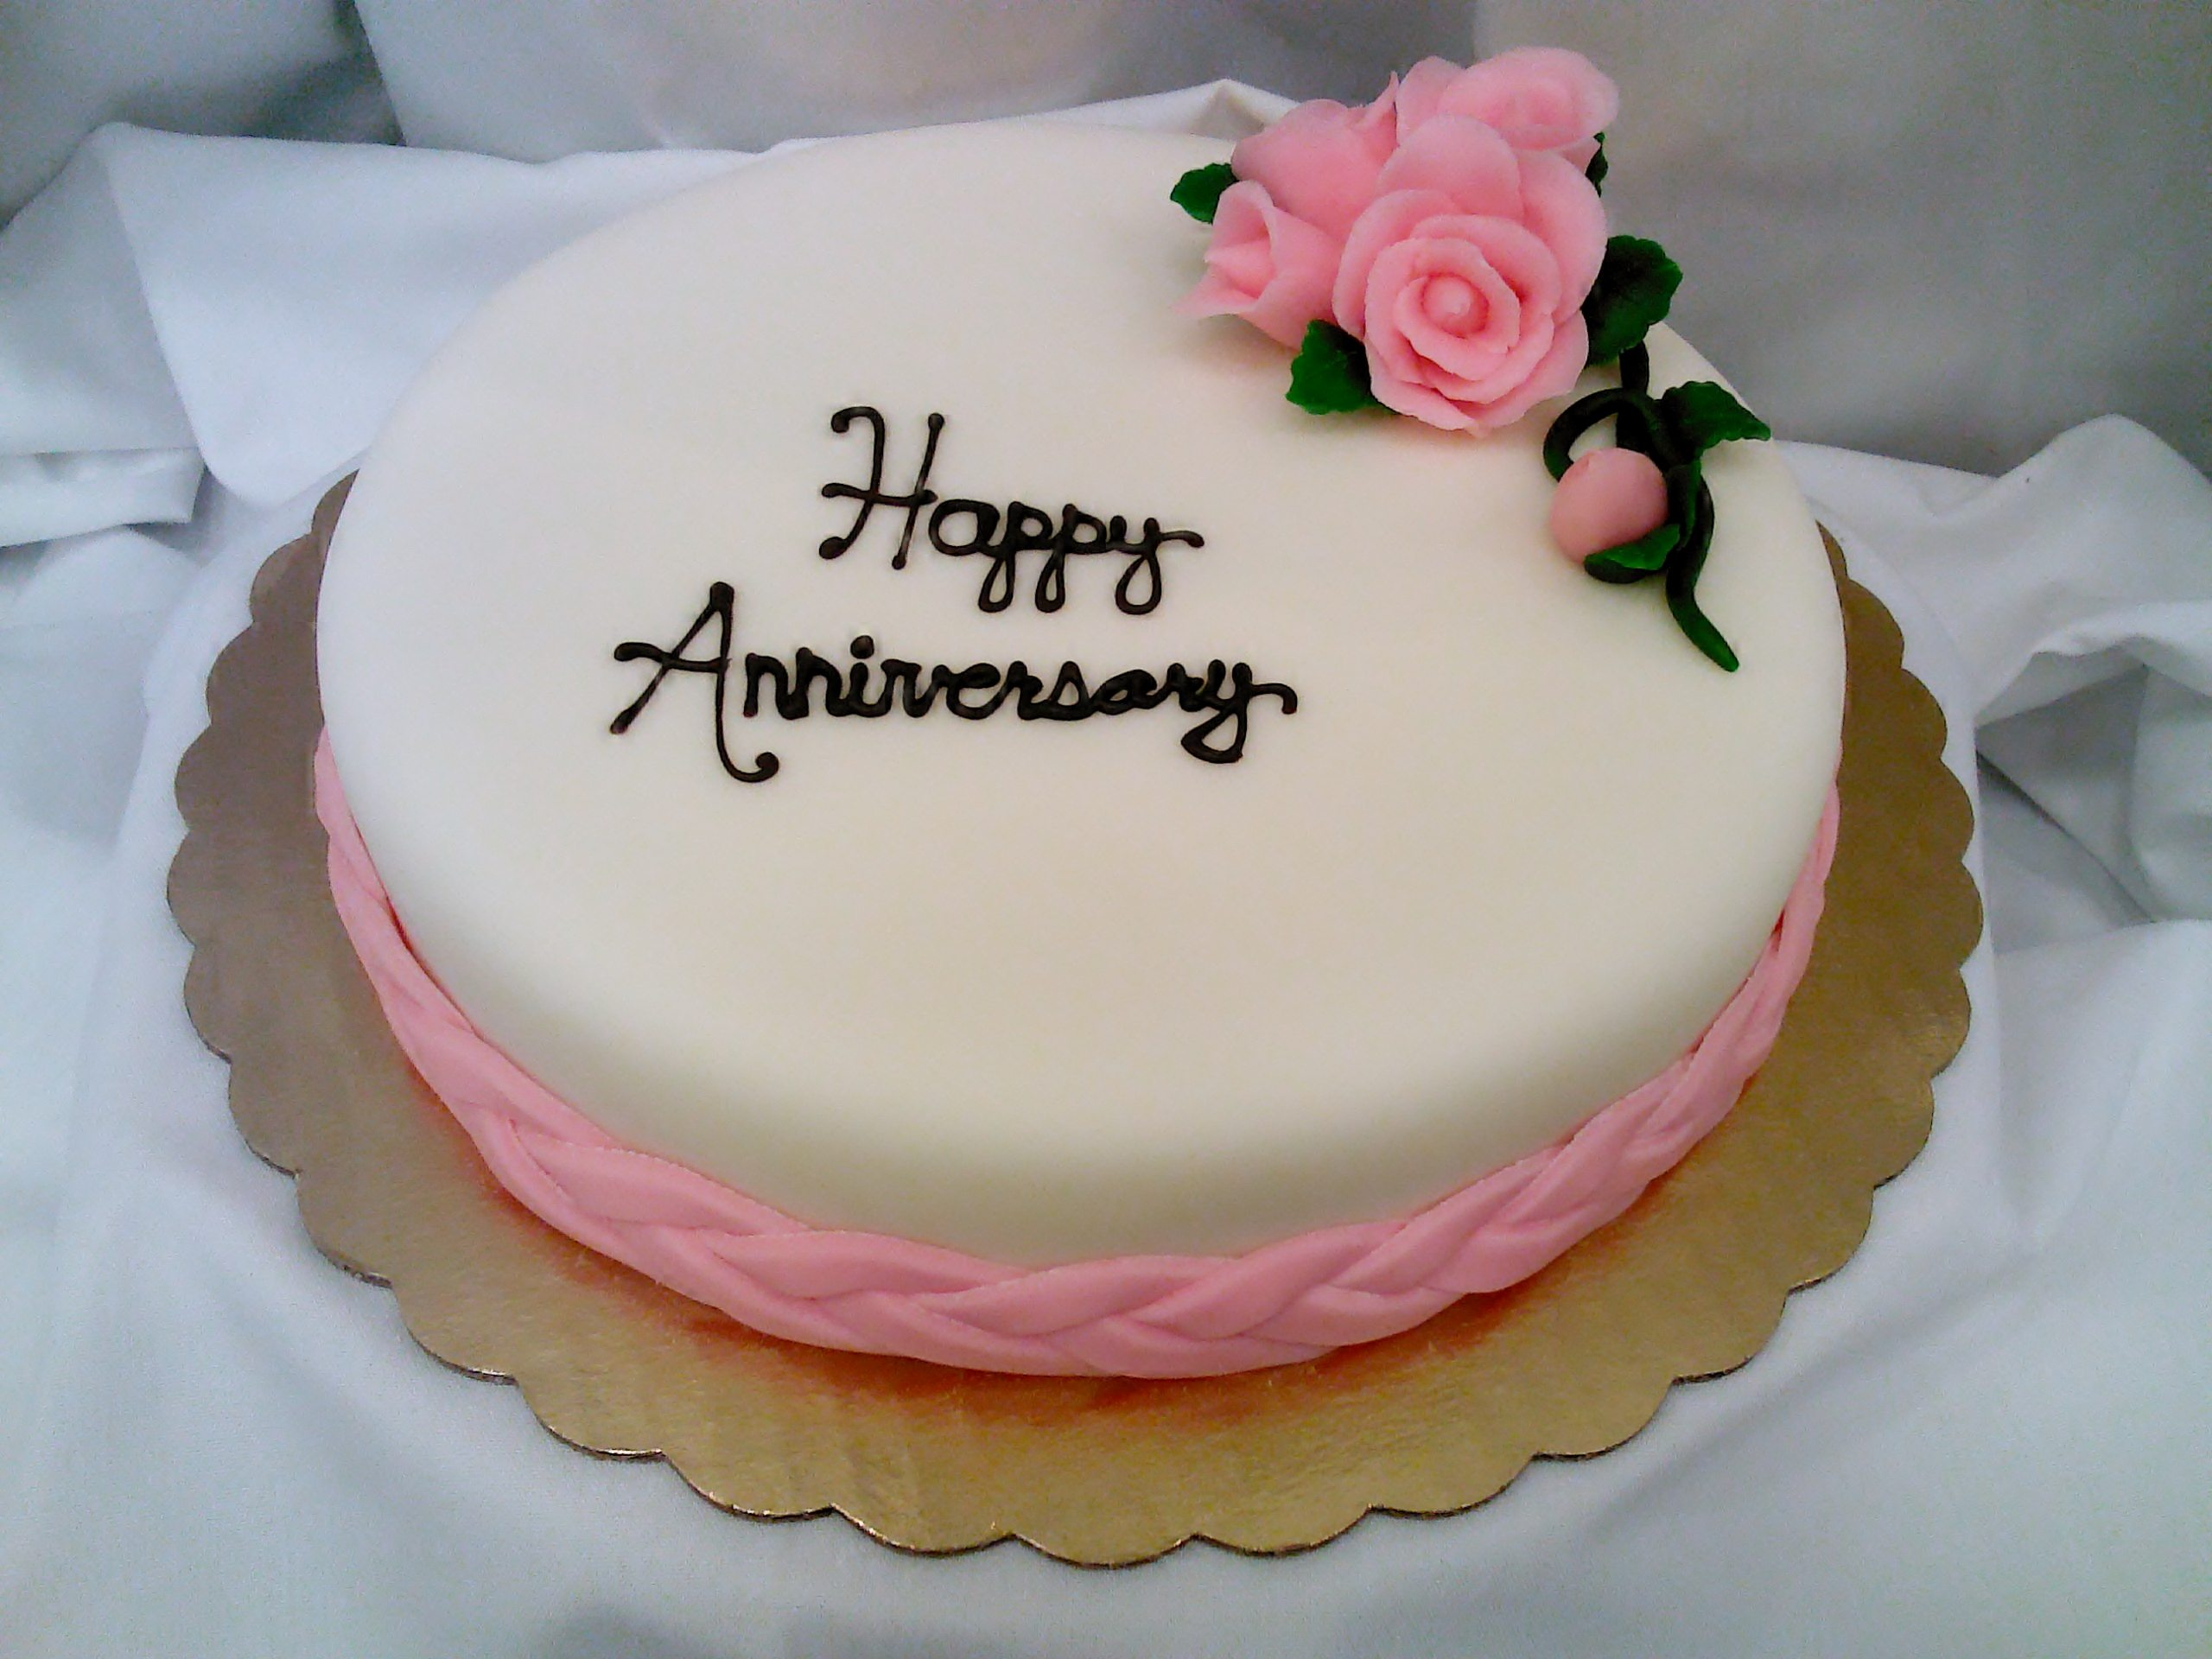 Cake pictures cake pics cake wallpaper for Anniversary cake decoration